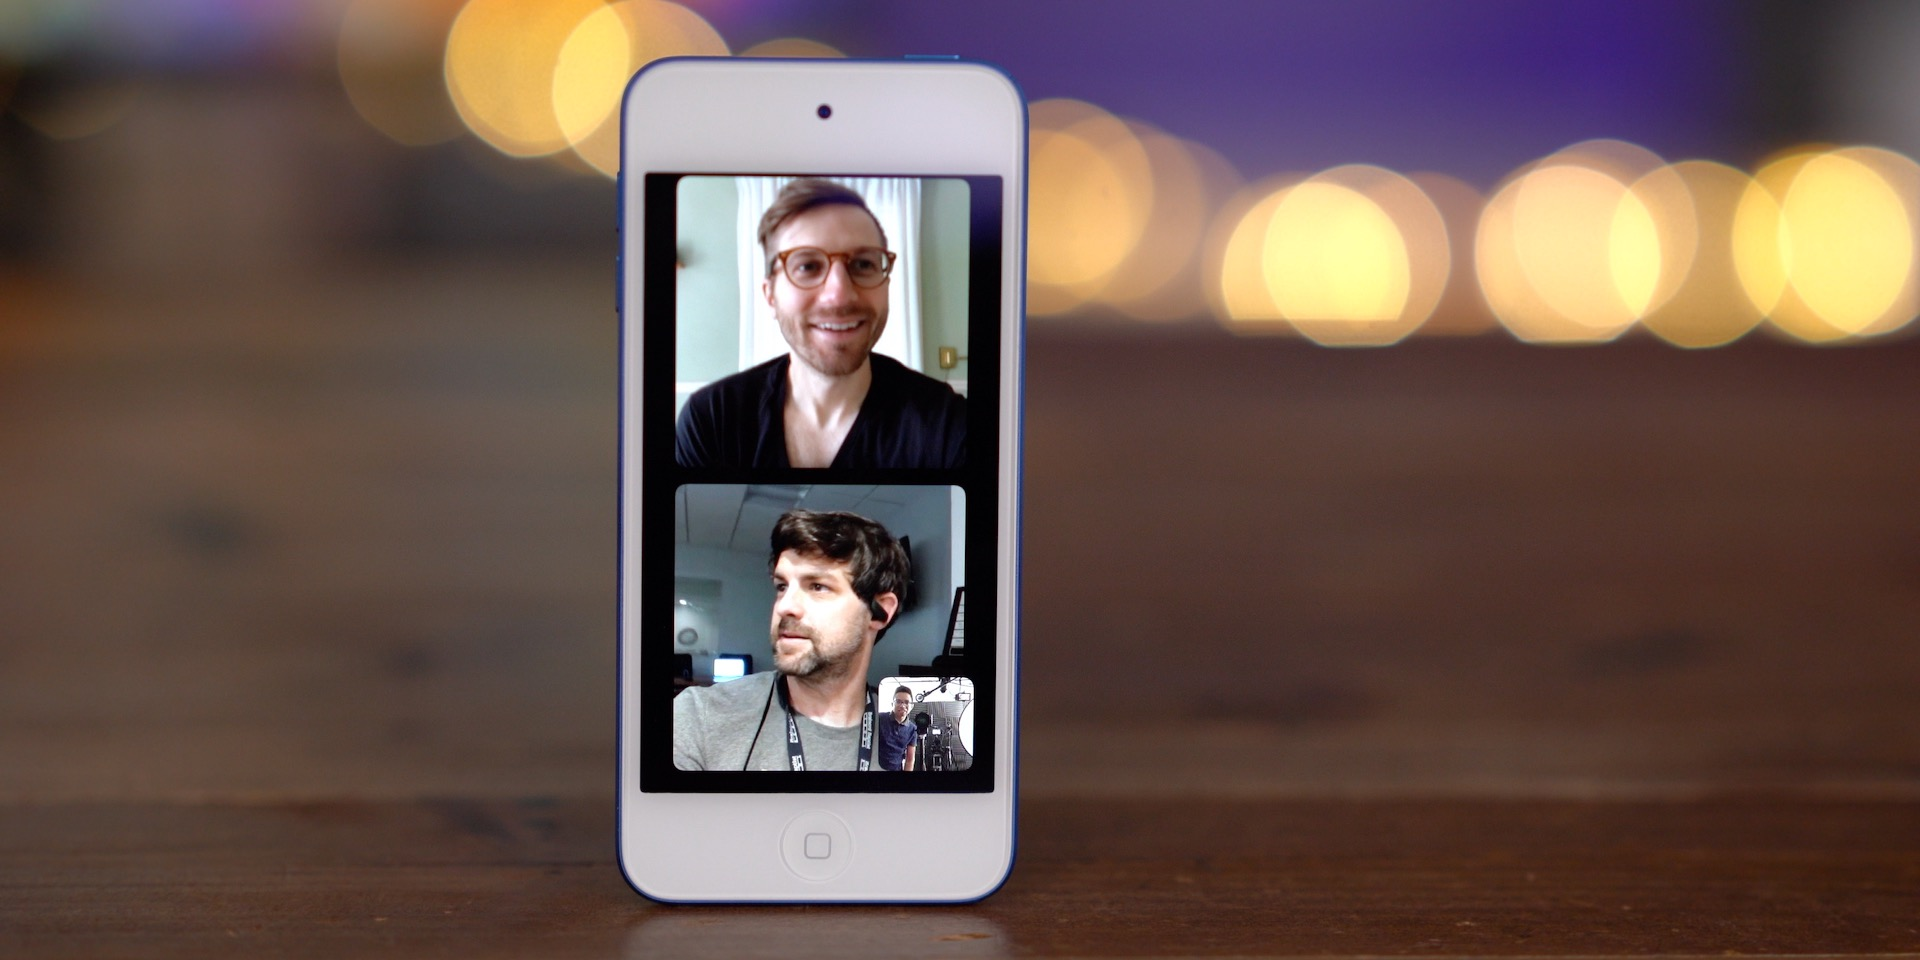 iPod touch 7 Group FaceTime